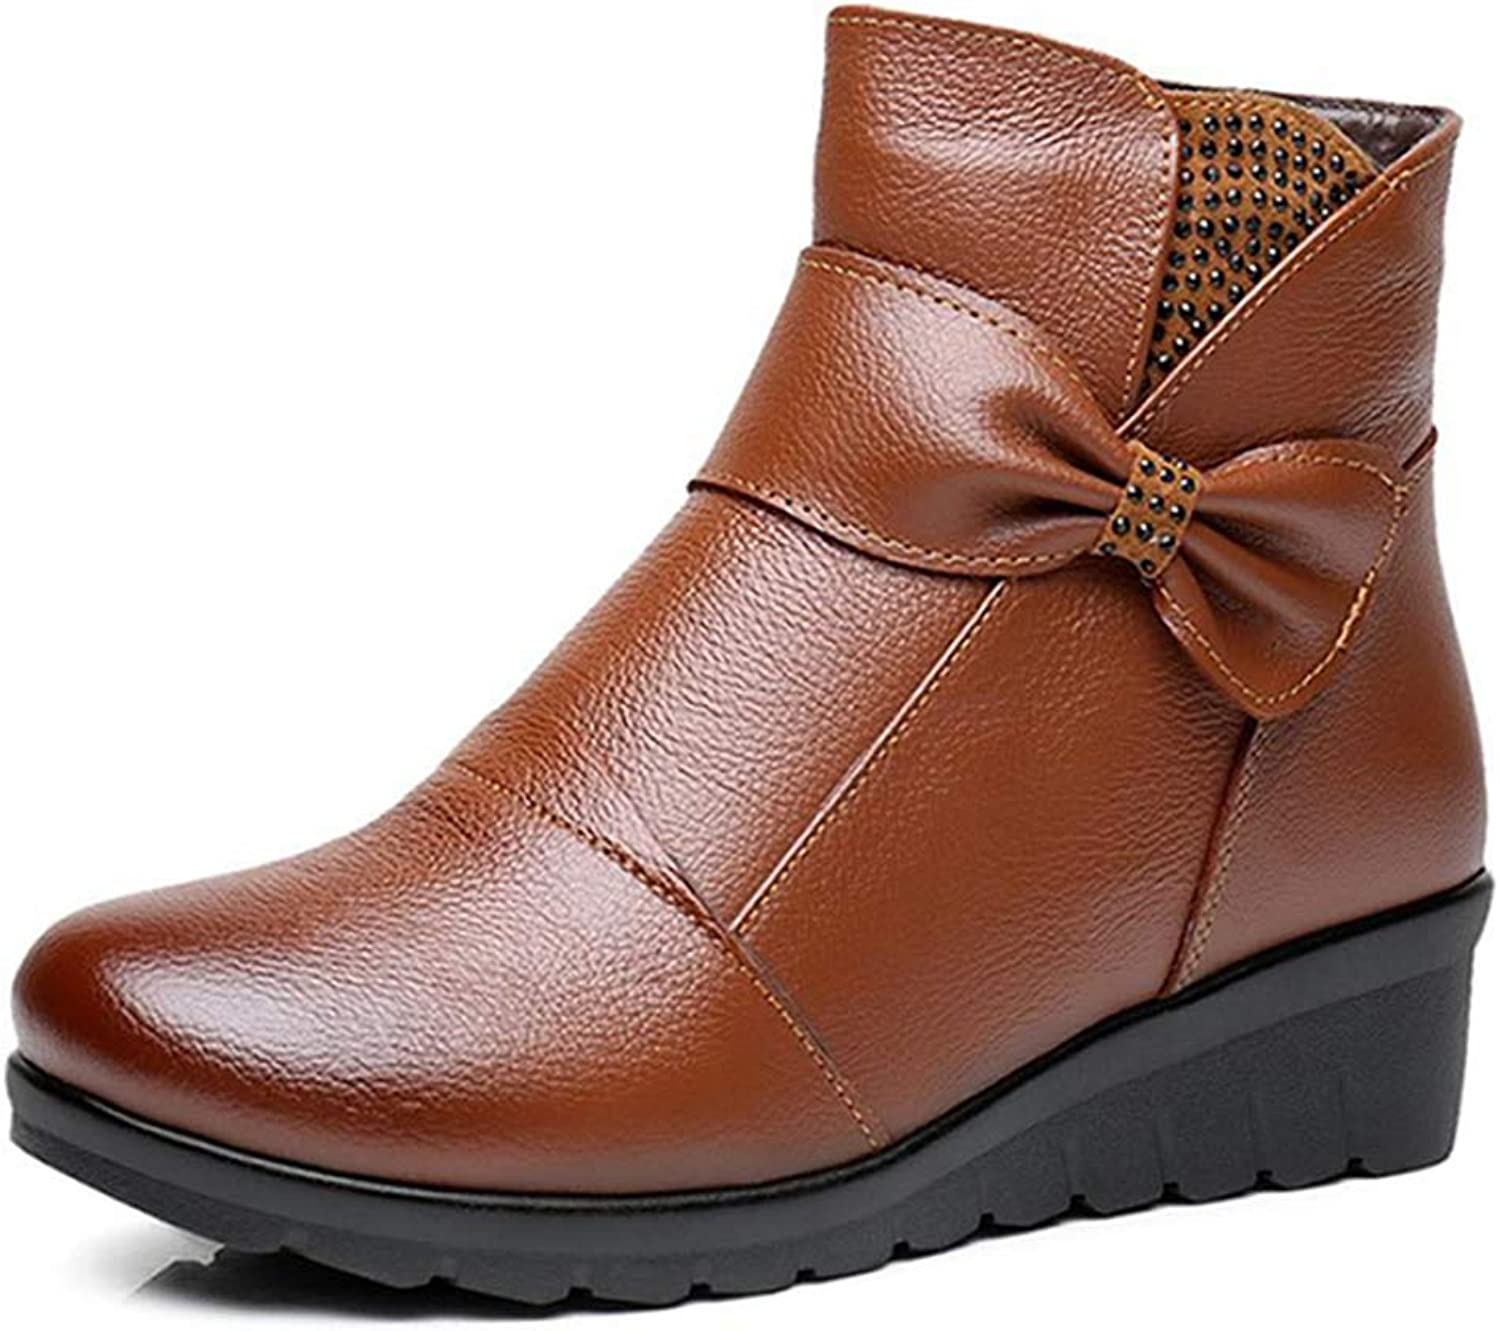 Fay Waters Women's Genuine Leather Zip Snow Boots Plush Lined Warm Ankle High Winter shoes